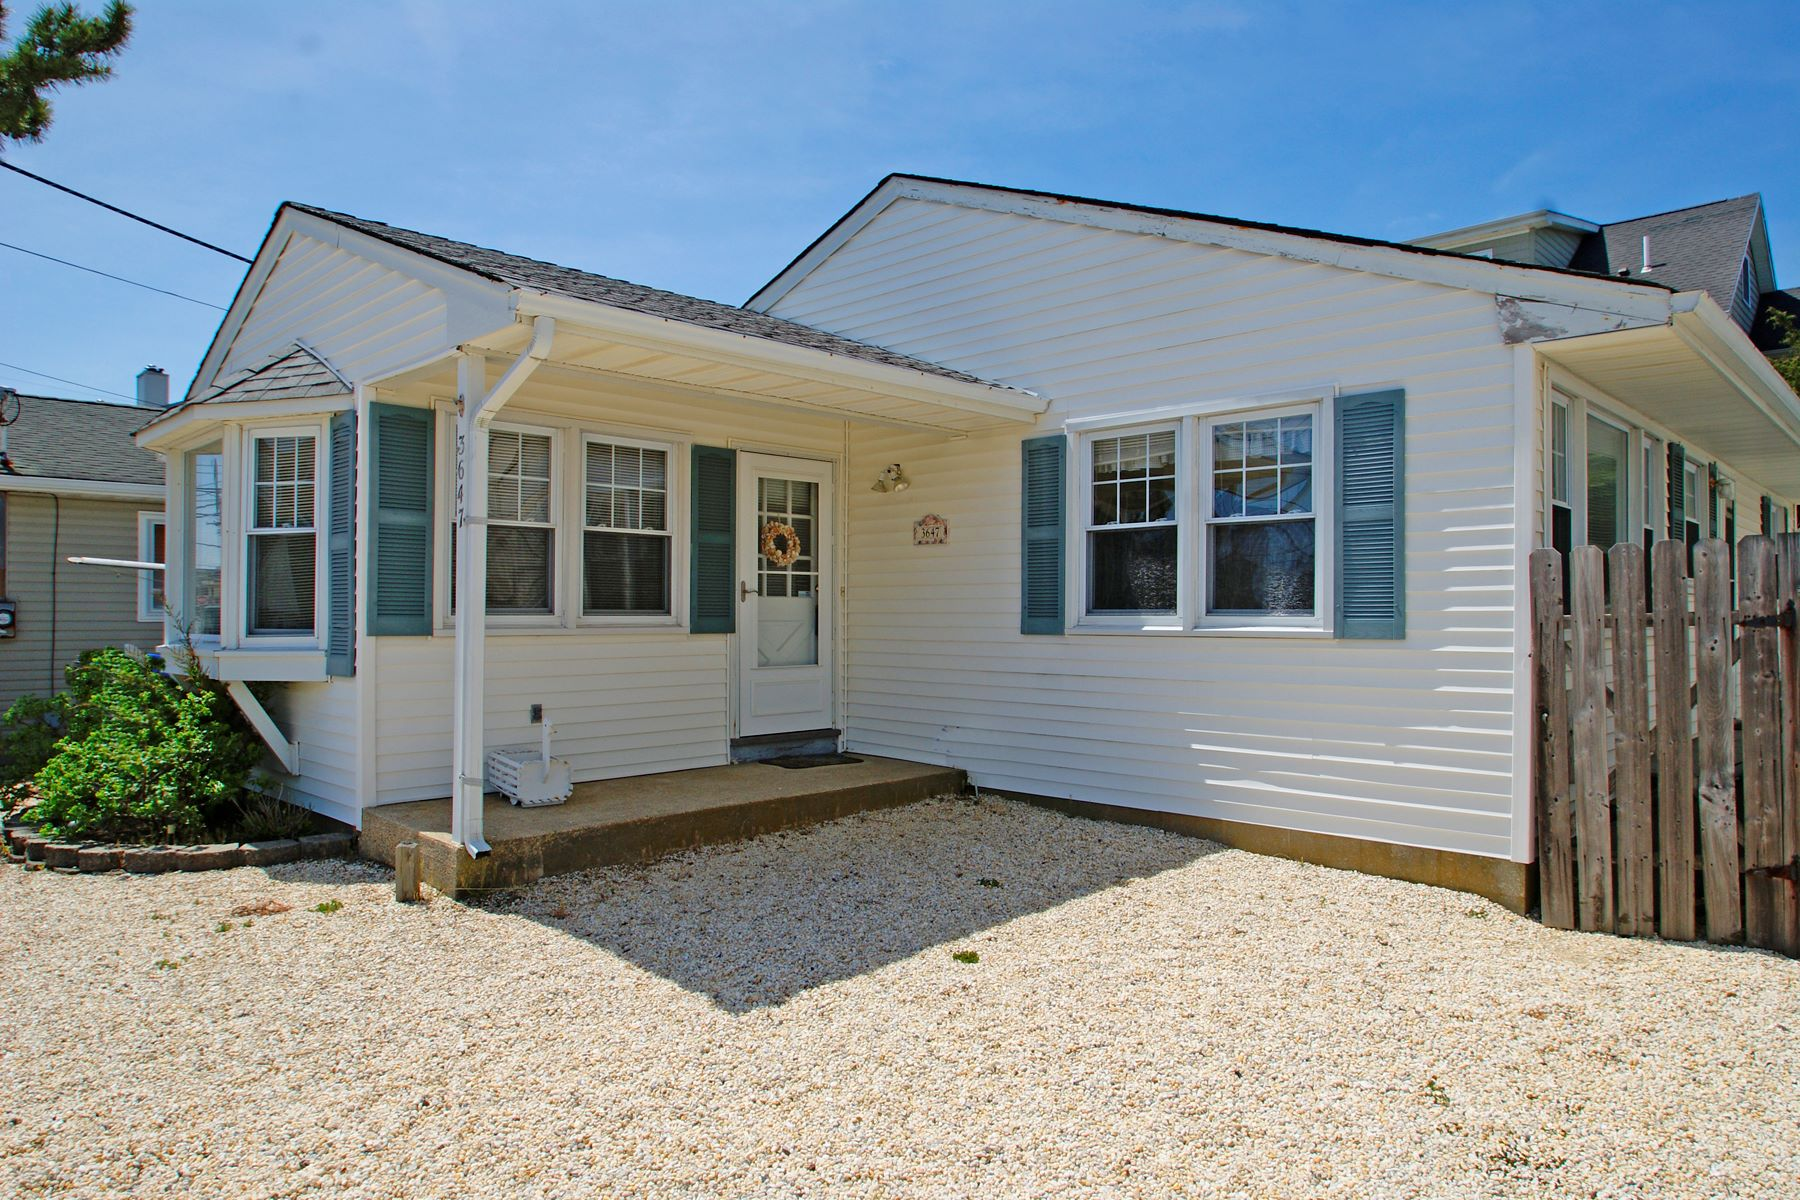 Single Family Home for Sale at Fantastic Shore Getaway One Block To The Beach 3647 Route 35 N, Normandy Beach, New Jersey 08739 United States